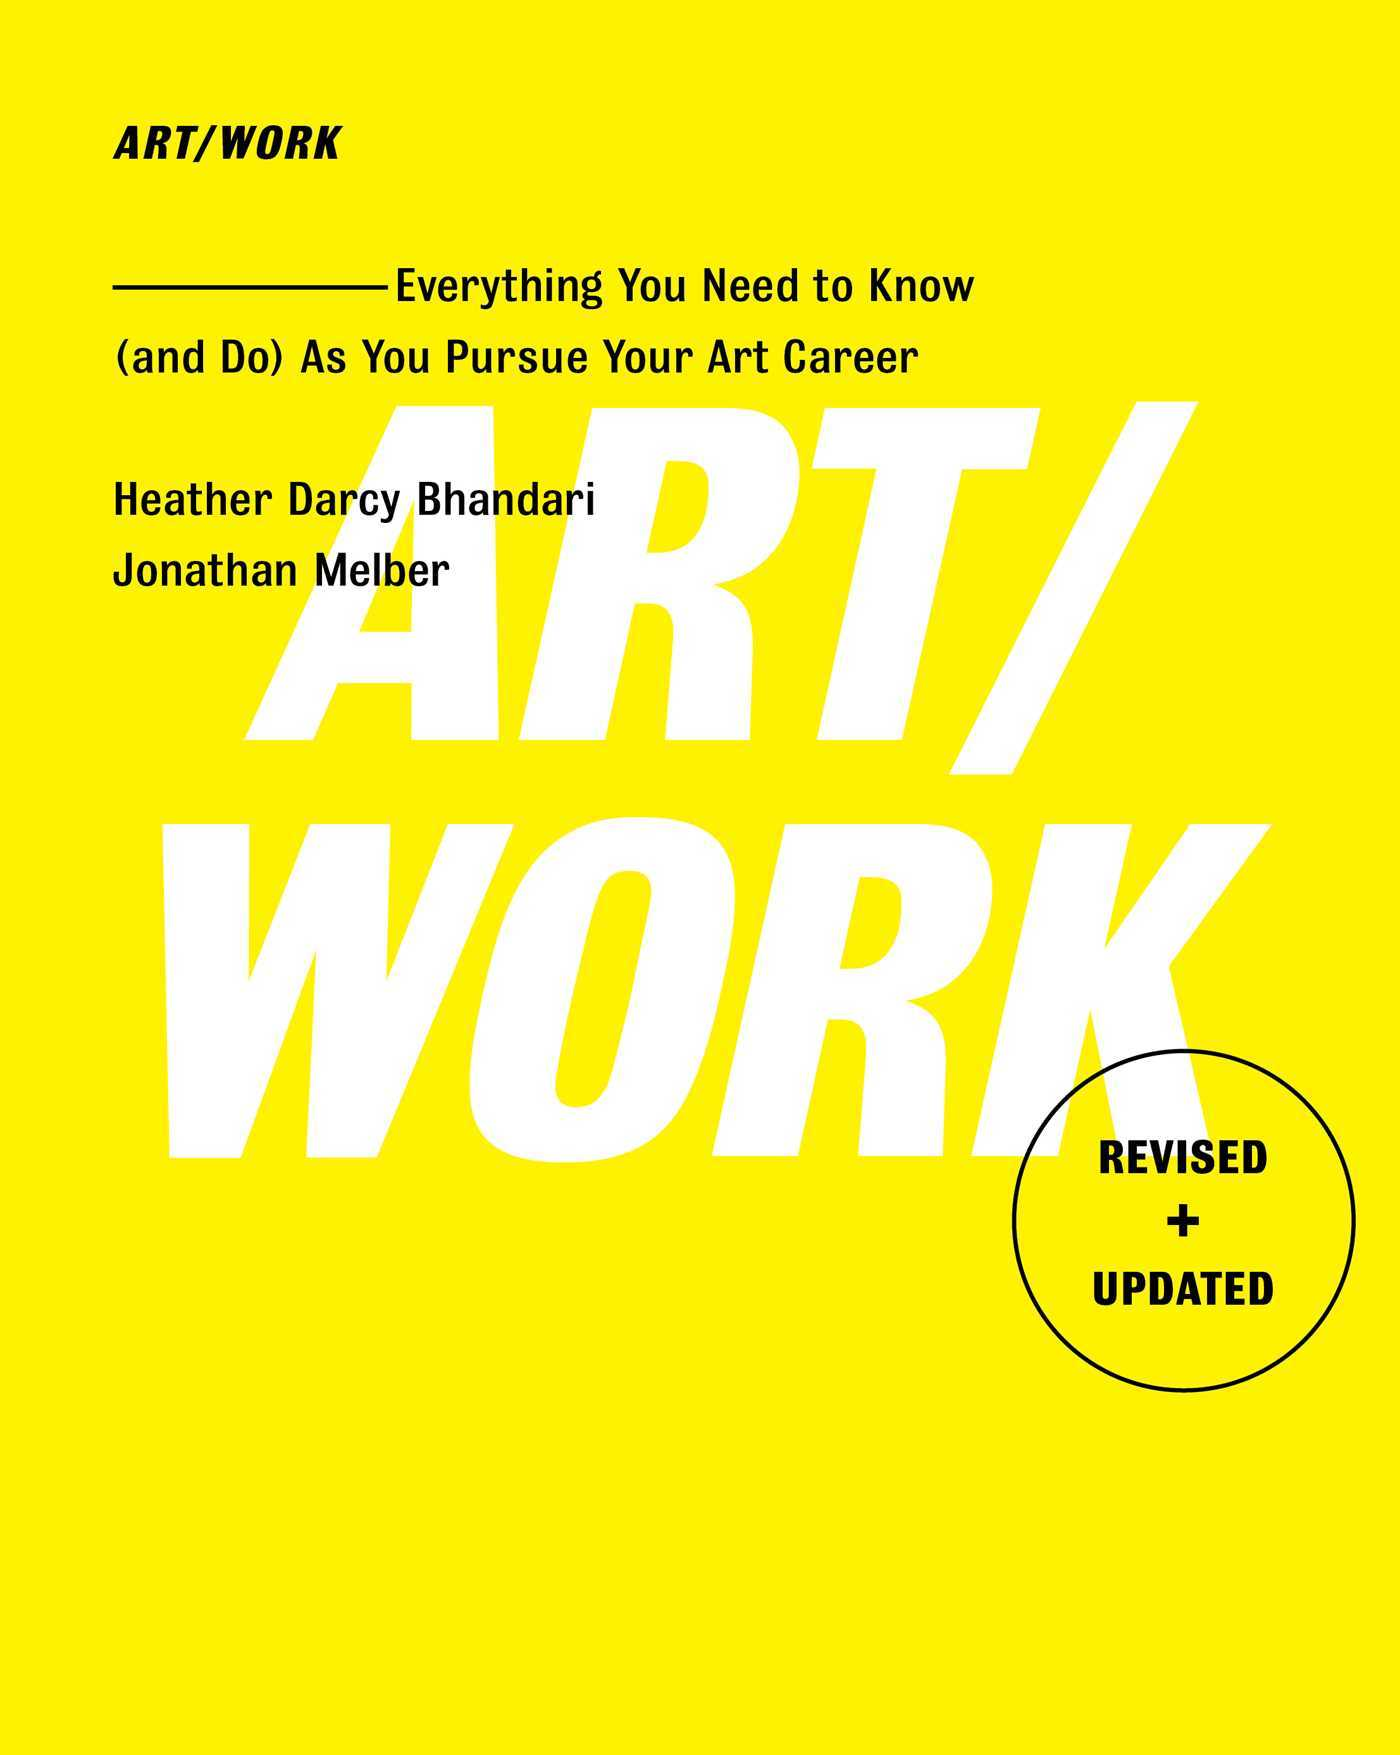 Art/Work - Revised  Updated: Everything You Need to Know (and Do) As You Pursue Your Art Career